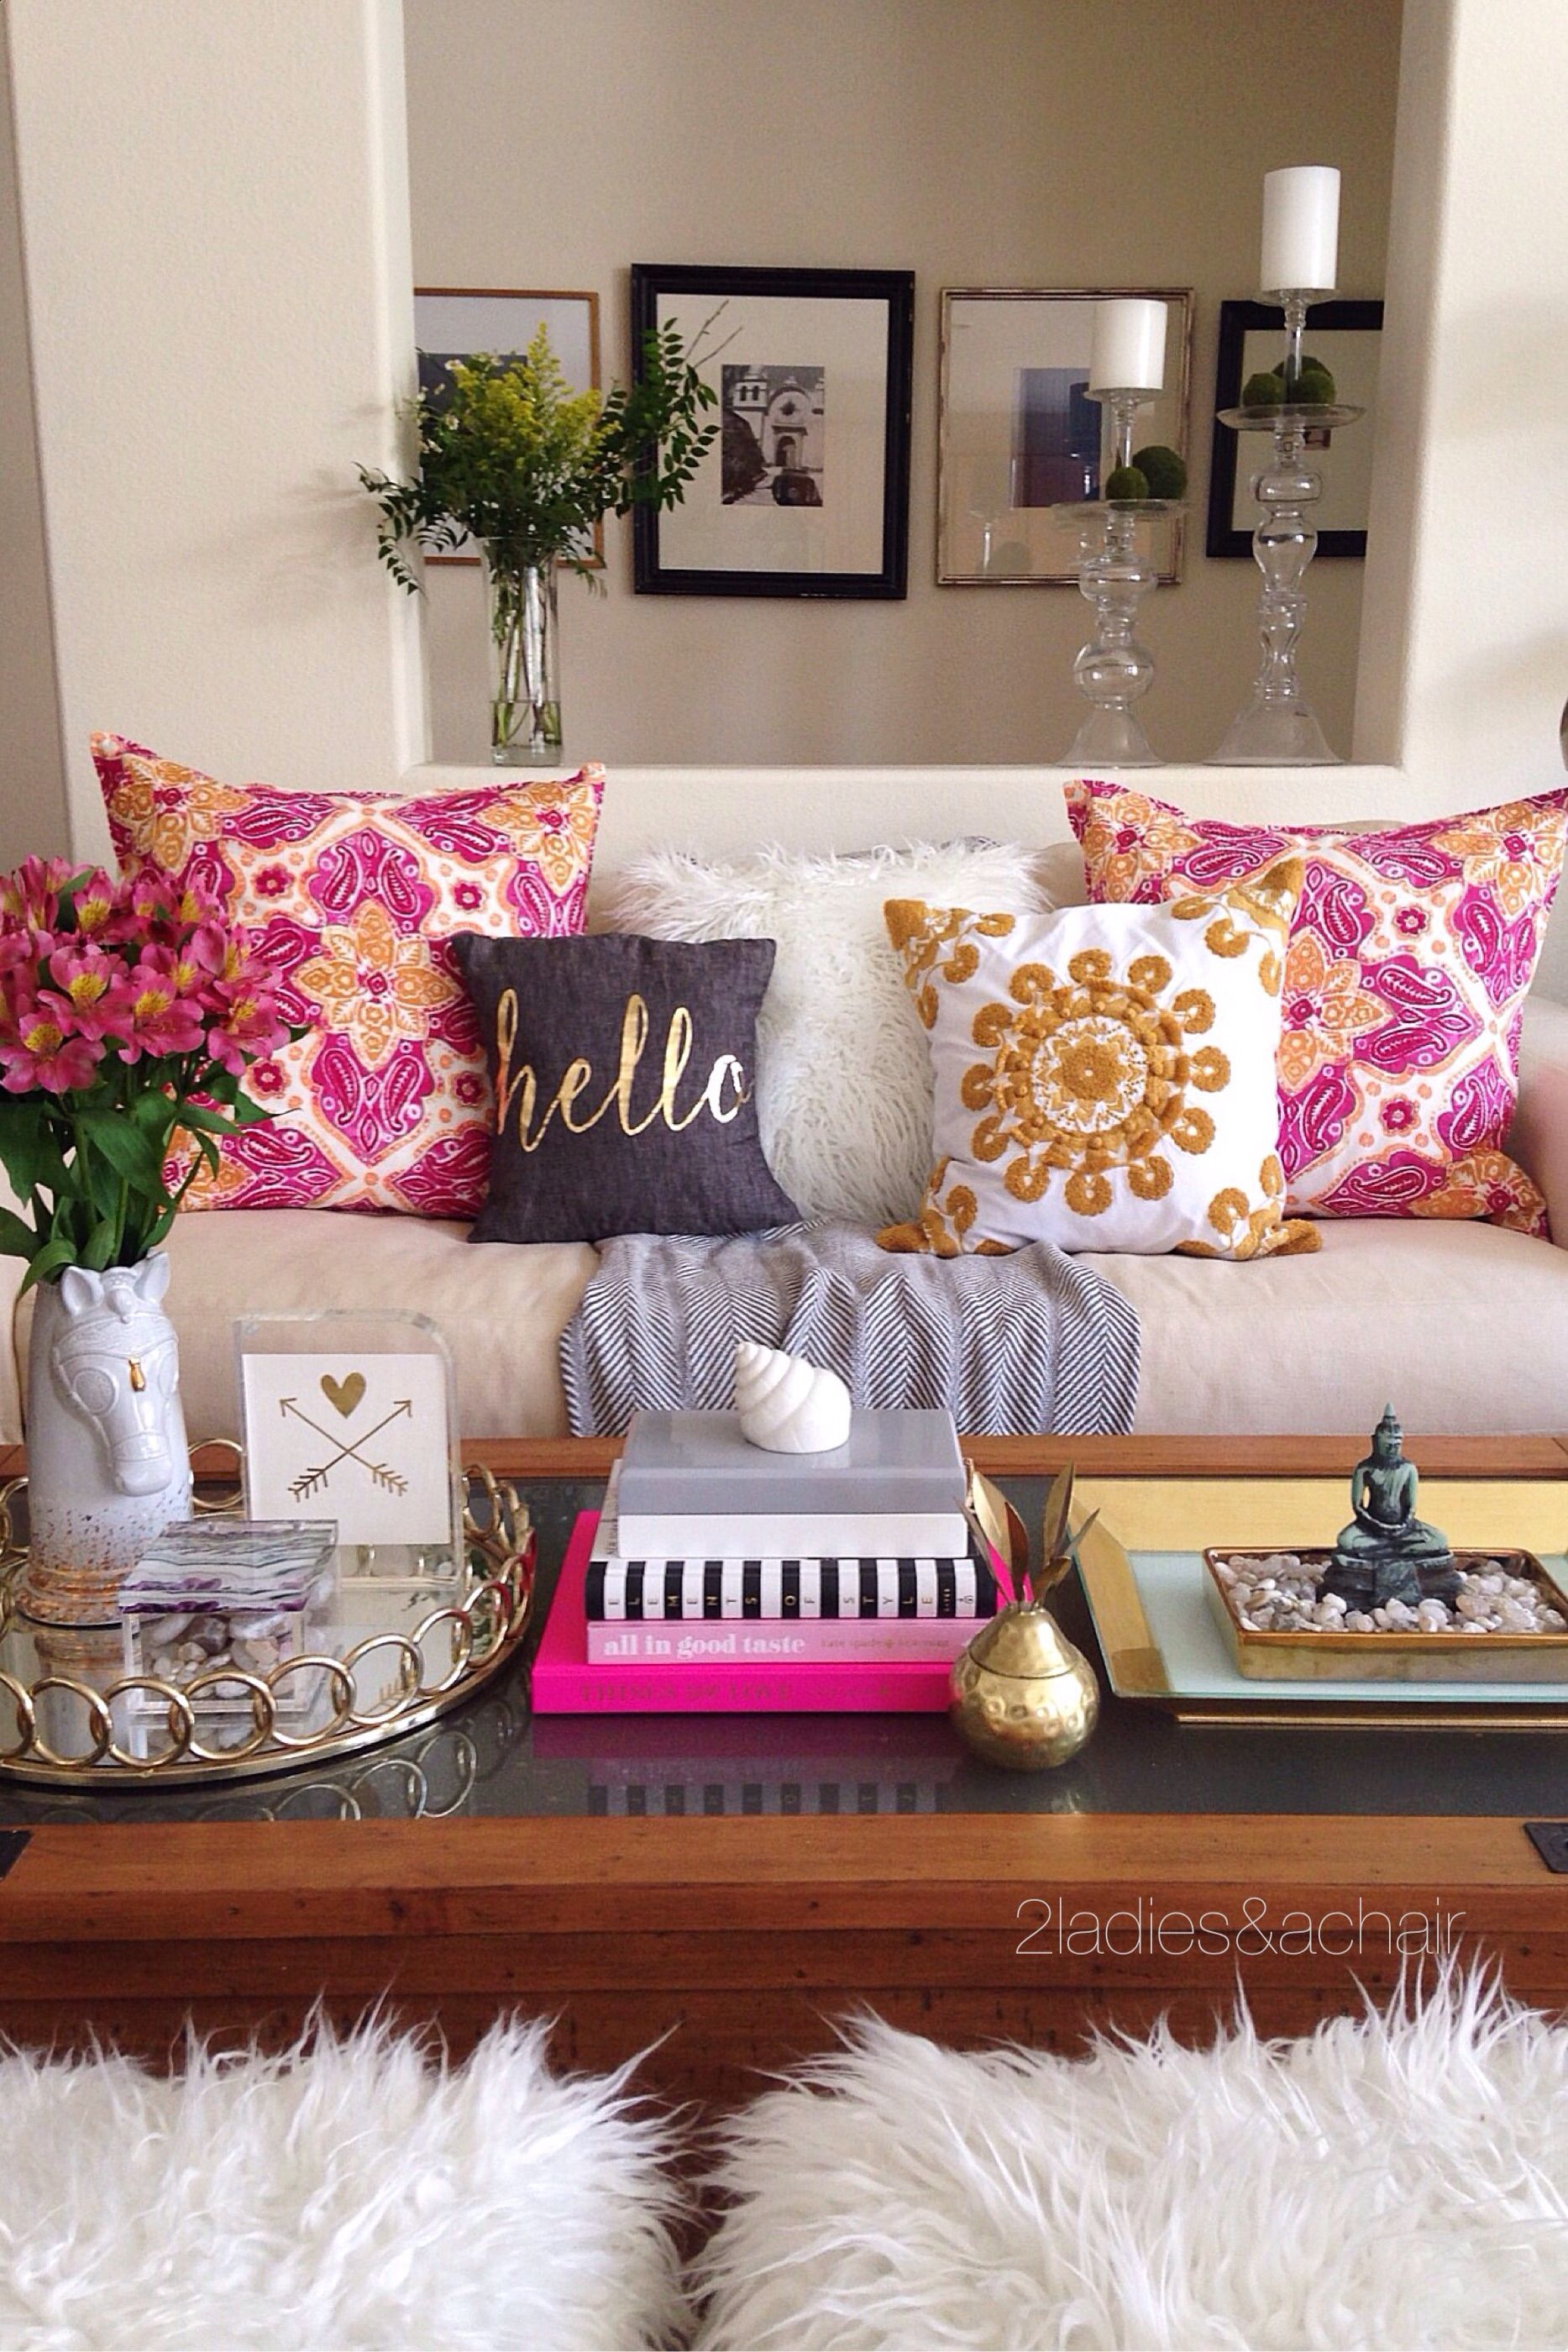 Decorating With Bright Colors 2 Ladies A Chair Home Decor Decor Room Inspiration